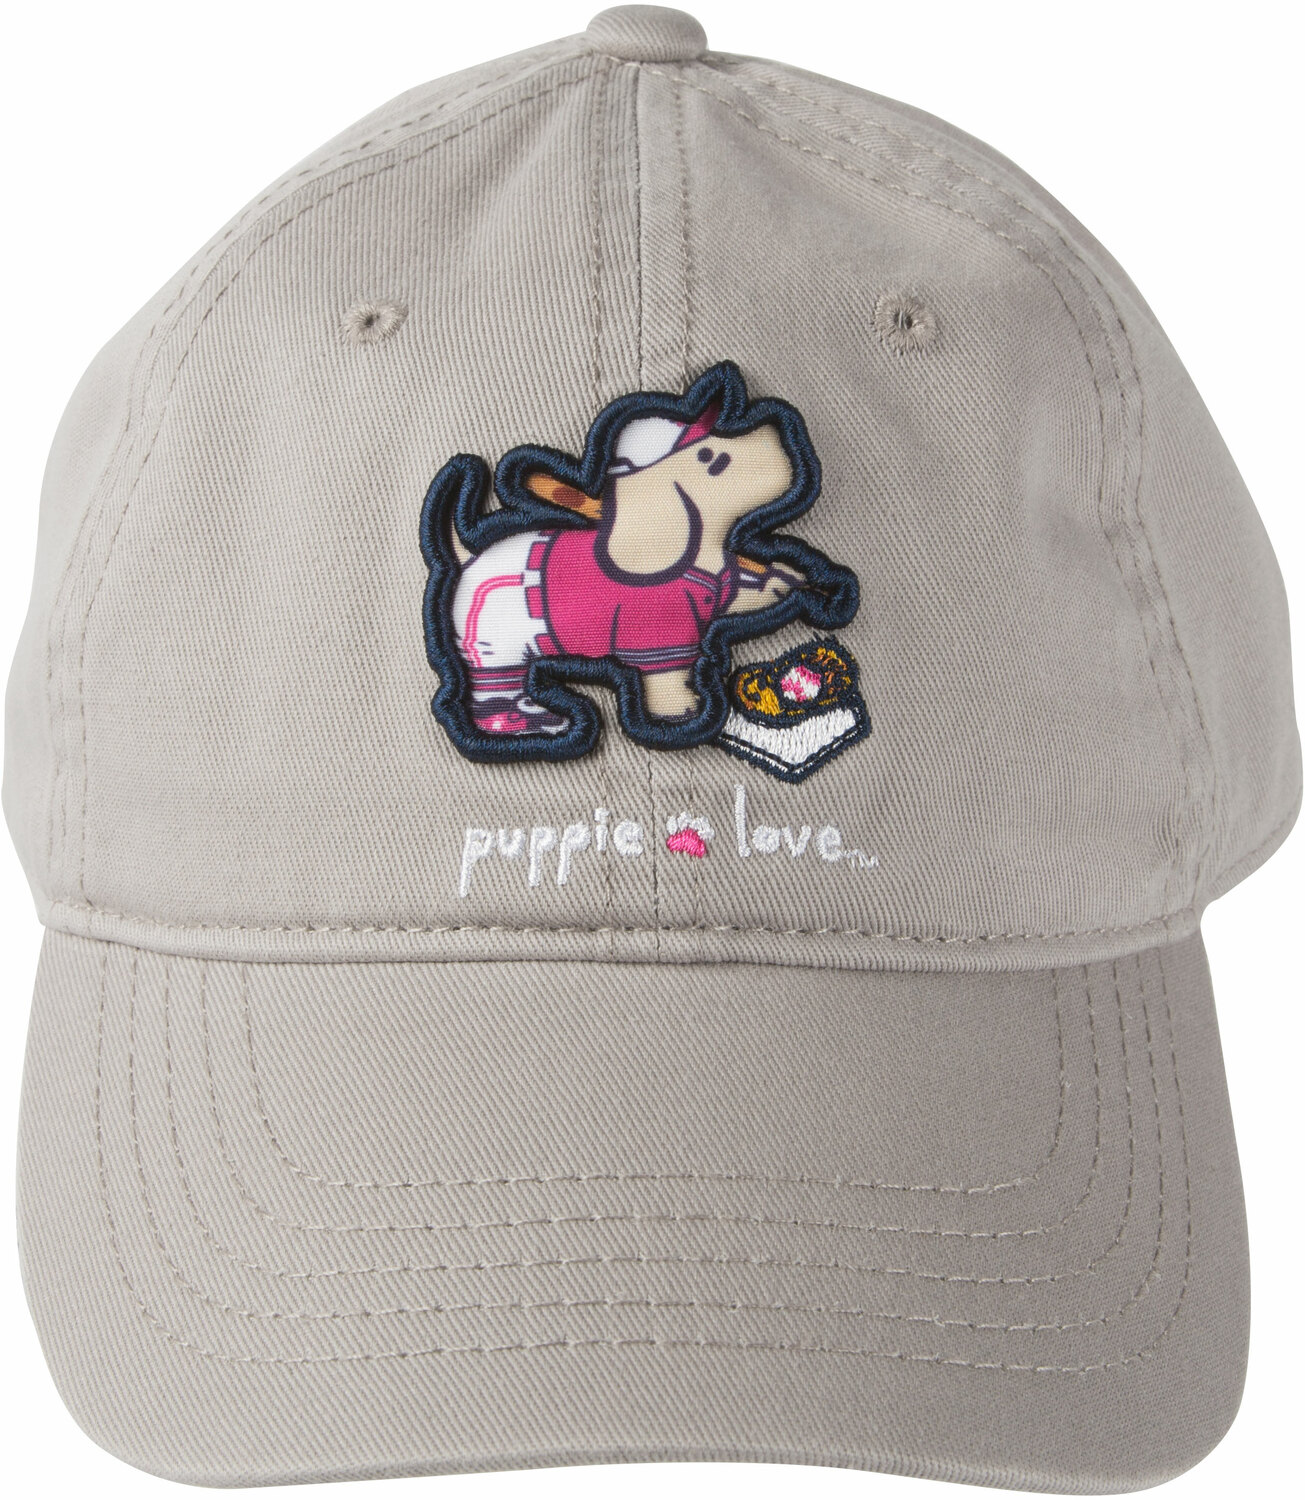 Softball by Puppie Love - Softball - Light Gray Adjustable Hat